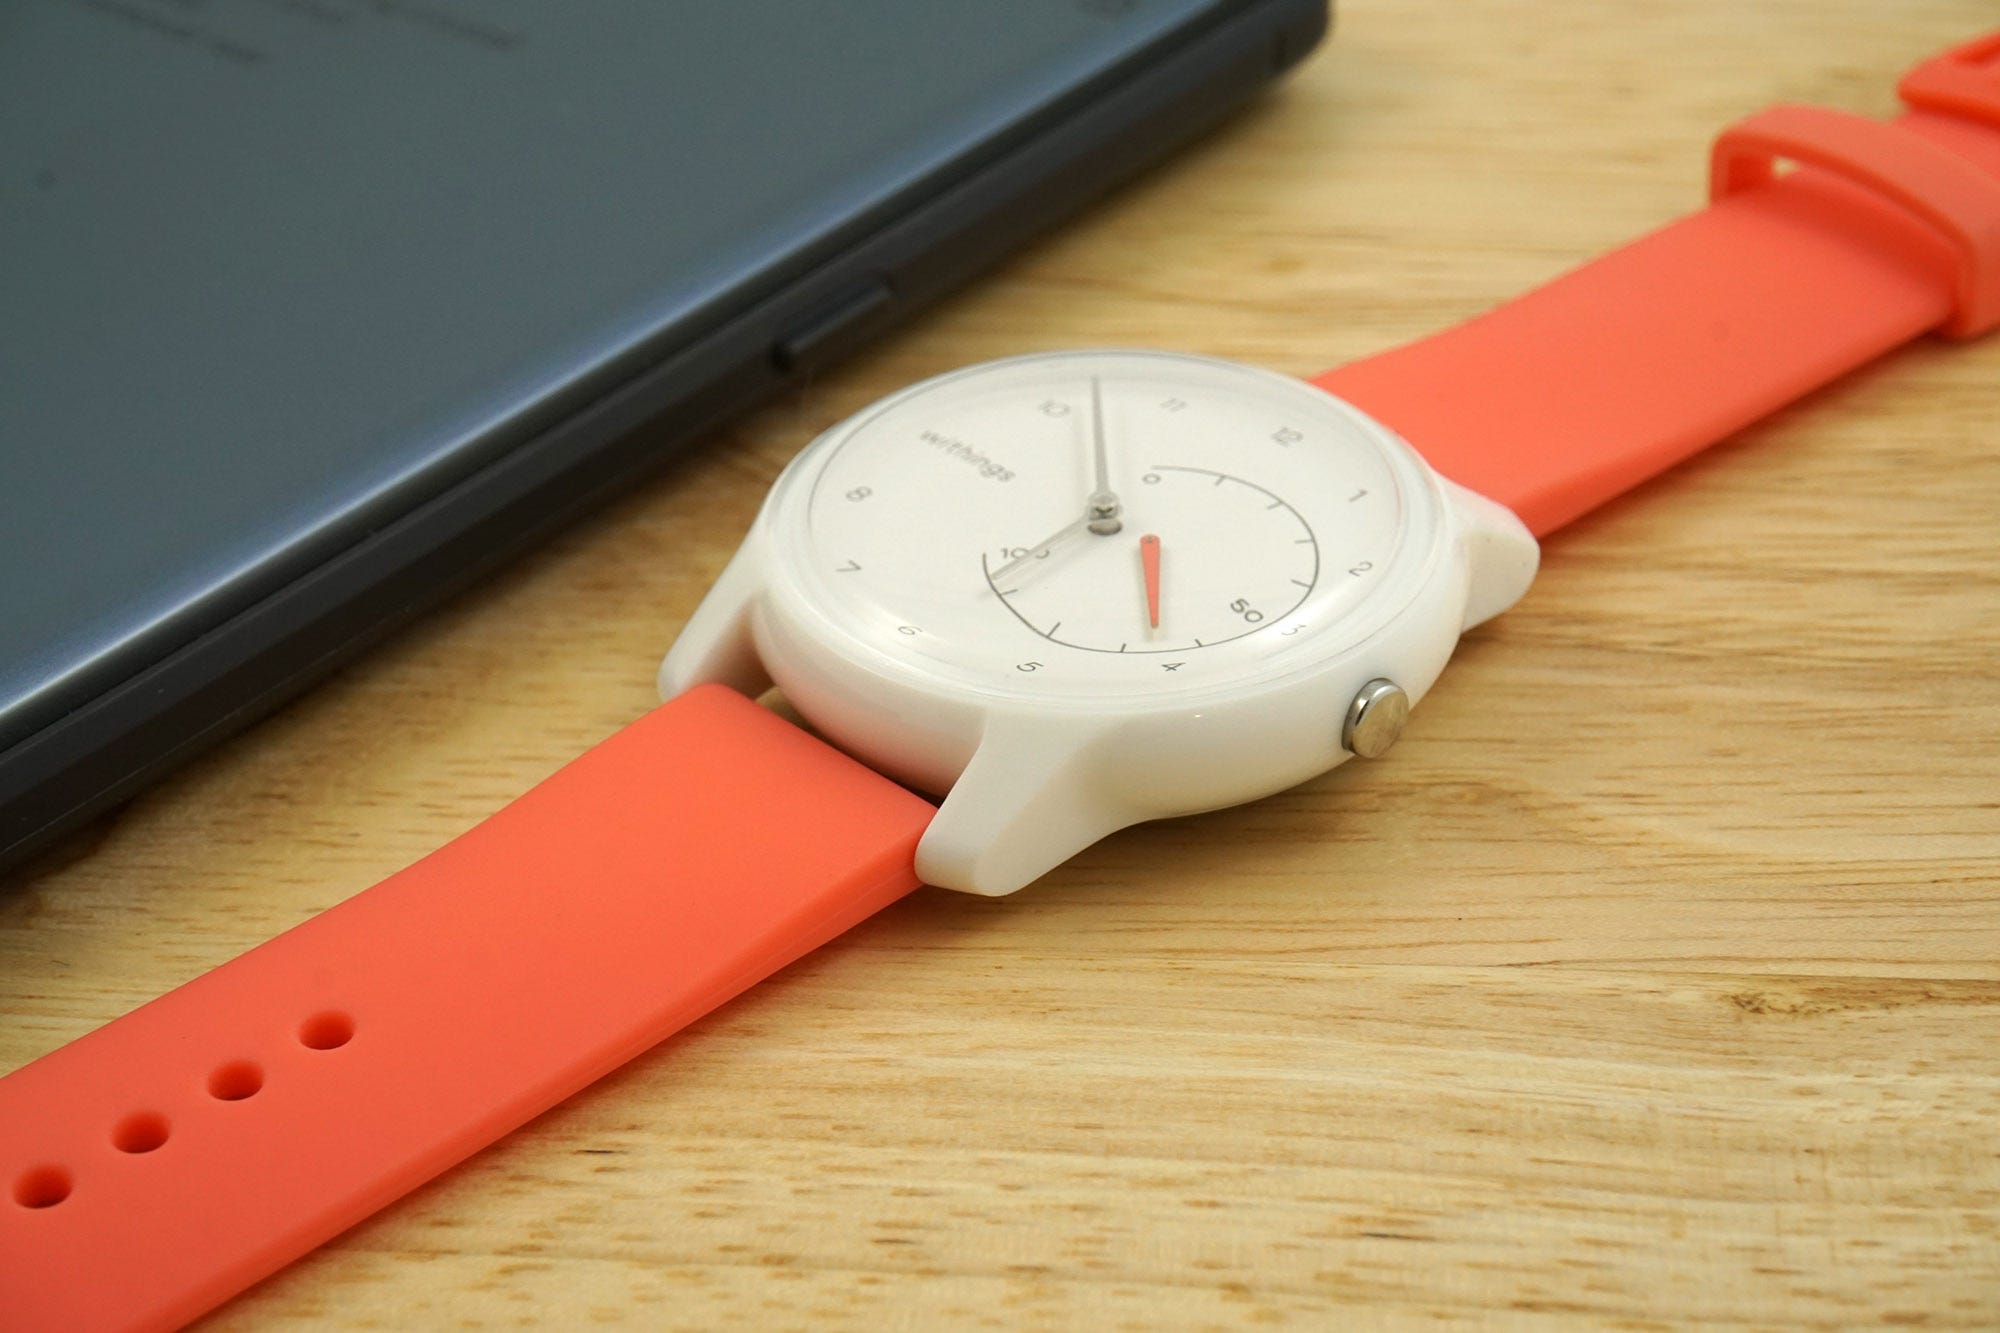 The Move's value proposition is lacking: pick up a more capable tracker, or a better watch, instead.